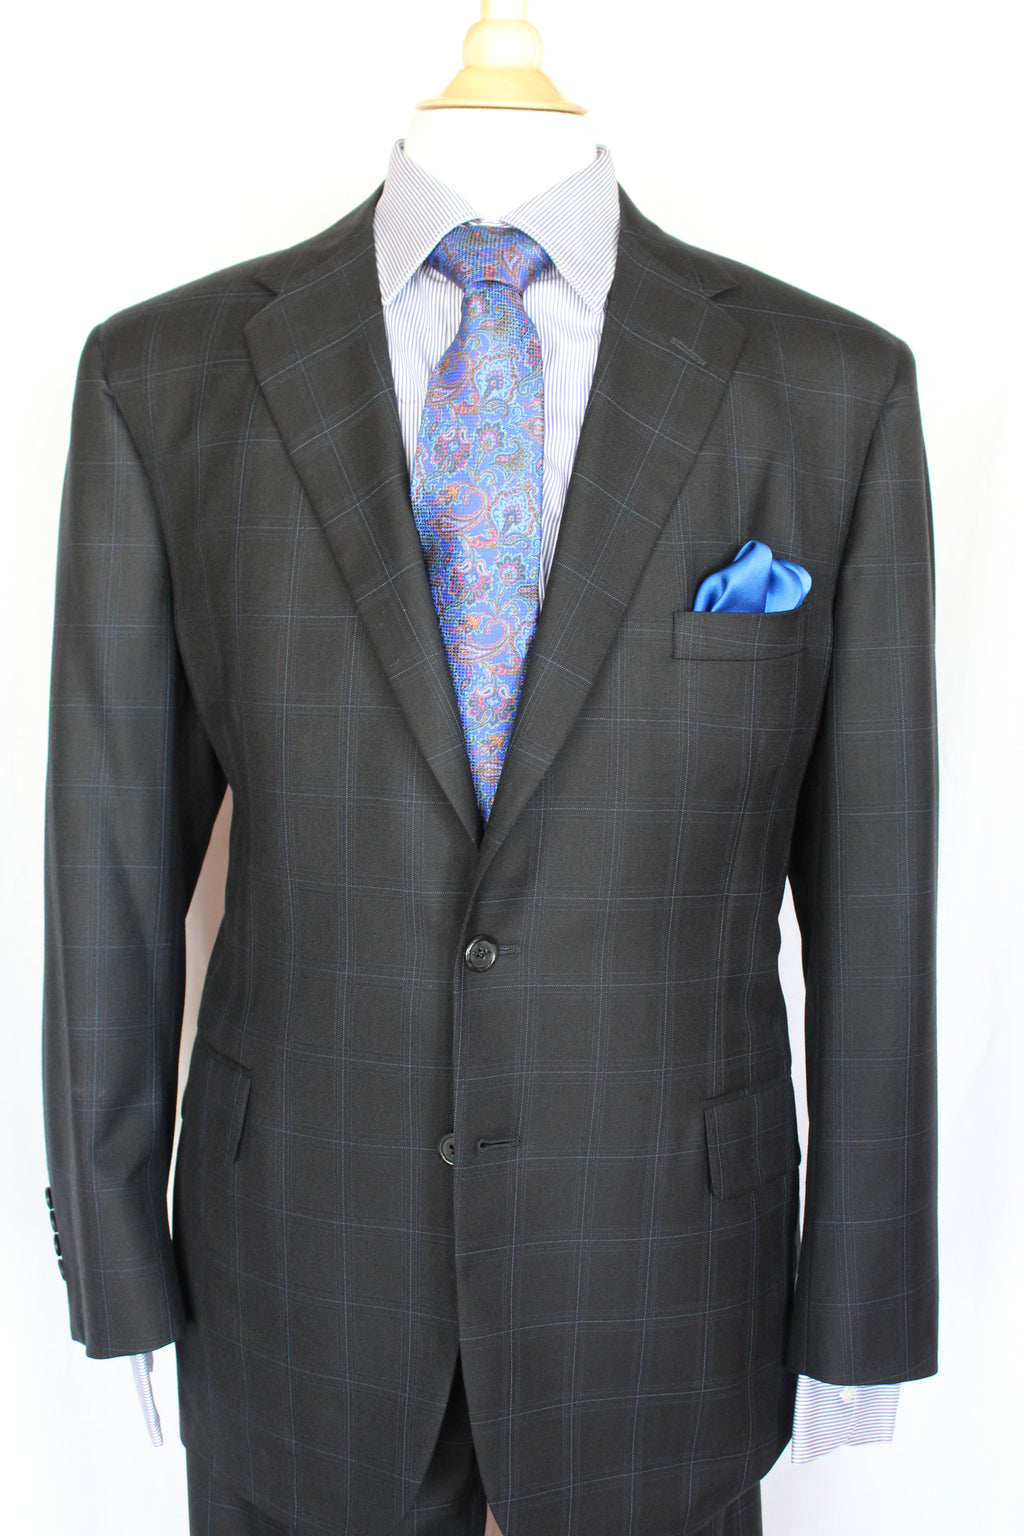 A. Smith Clothiers Black Suit with Blue Accent Stripes